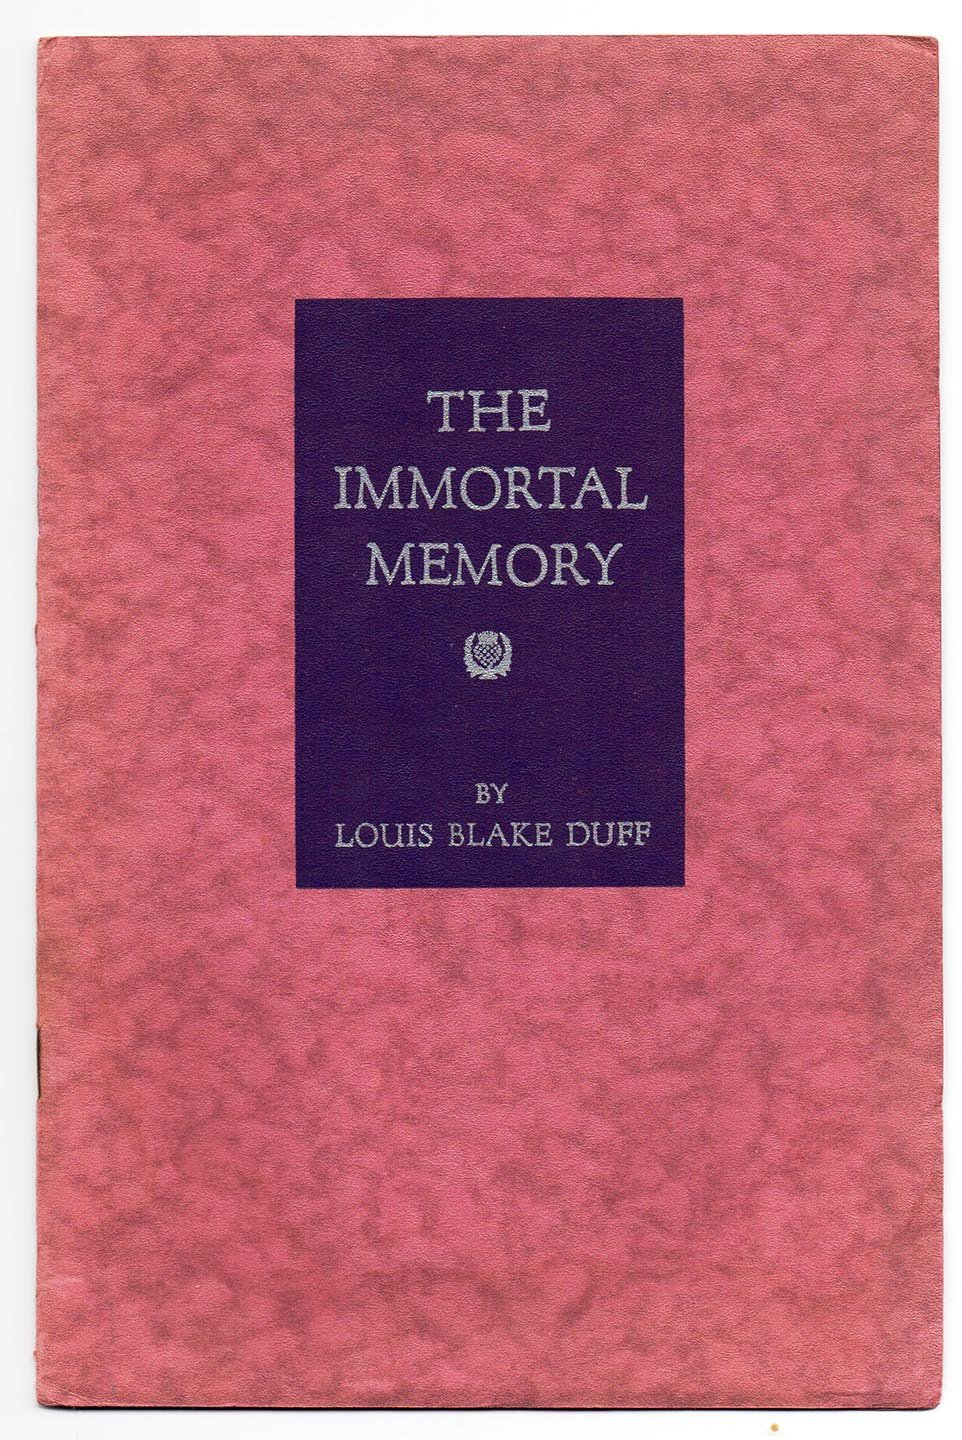 The Immortal Memory: An Address before the Burns Literary Society of Toronto, January 25, 1944